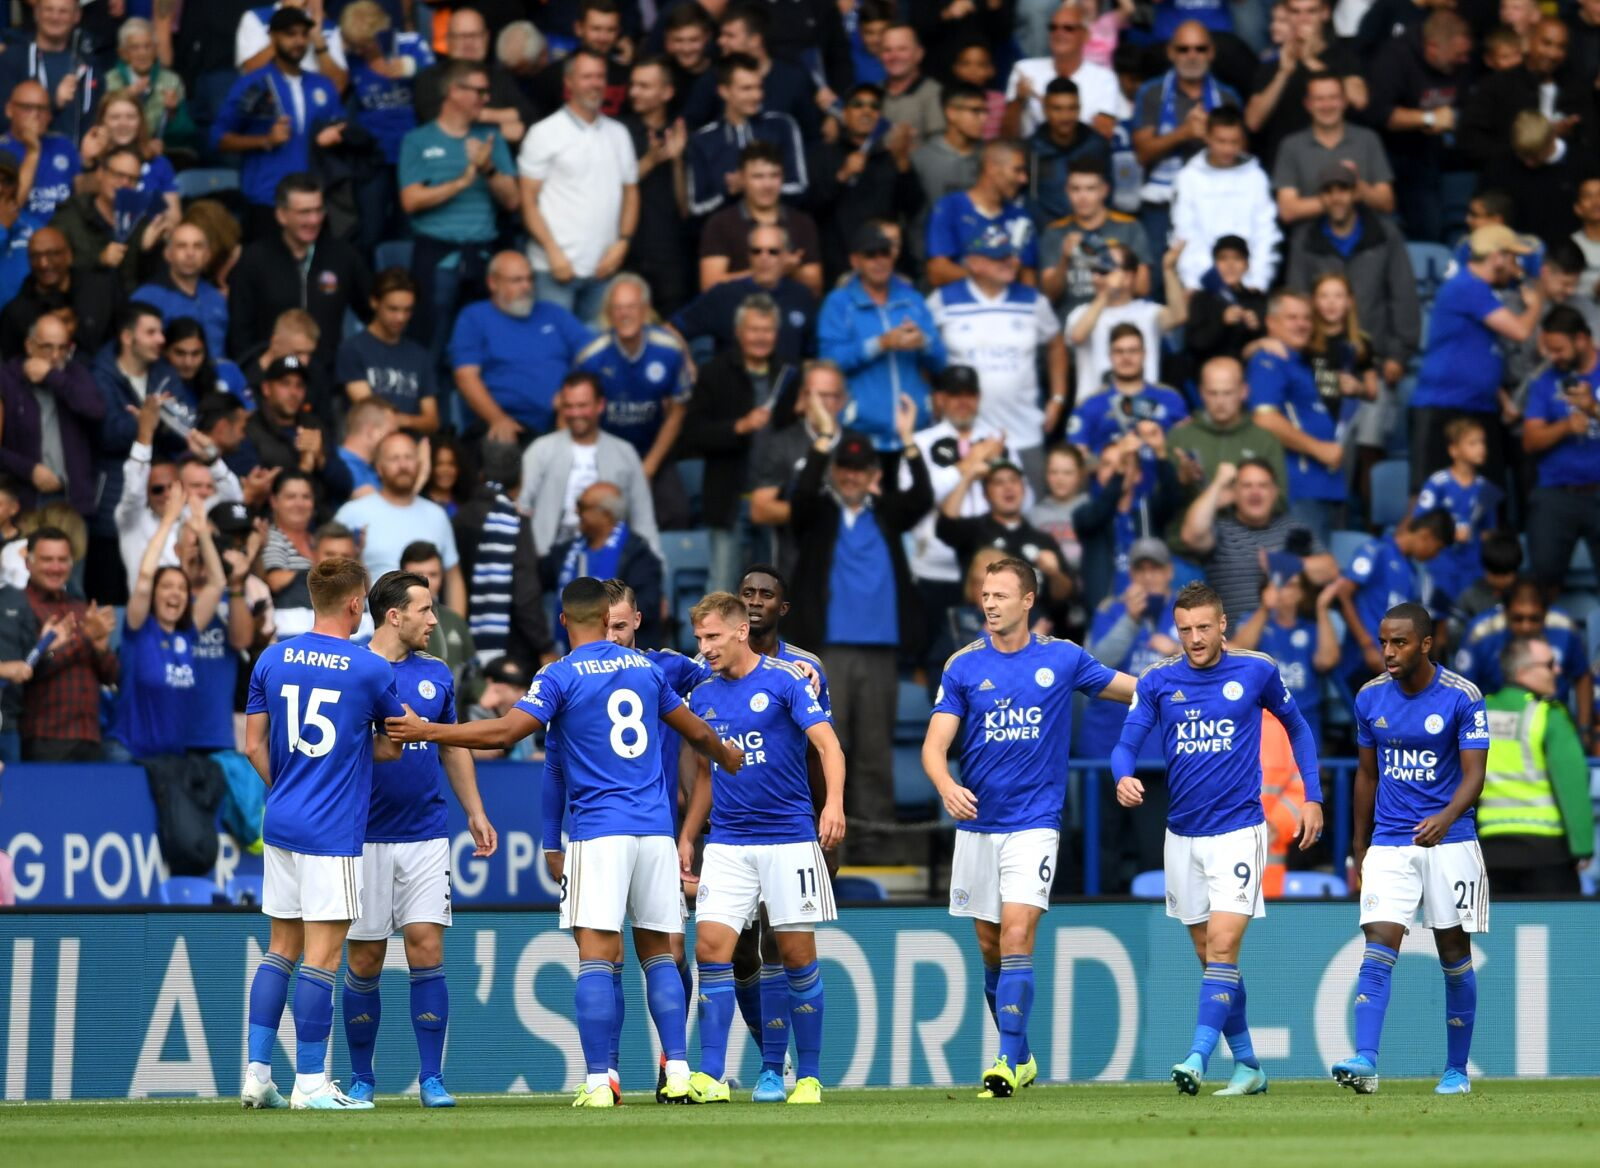 Star Leicester City player judged fit to face Tottenham Hotspur